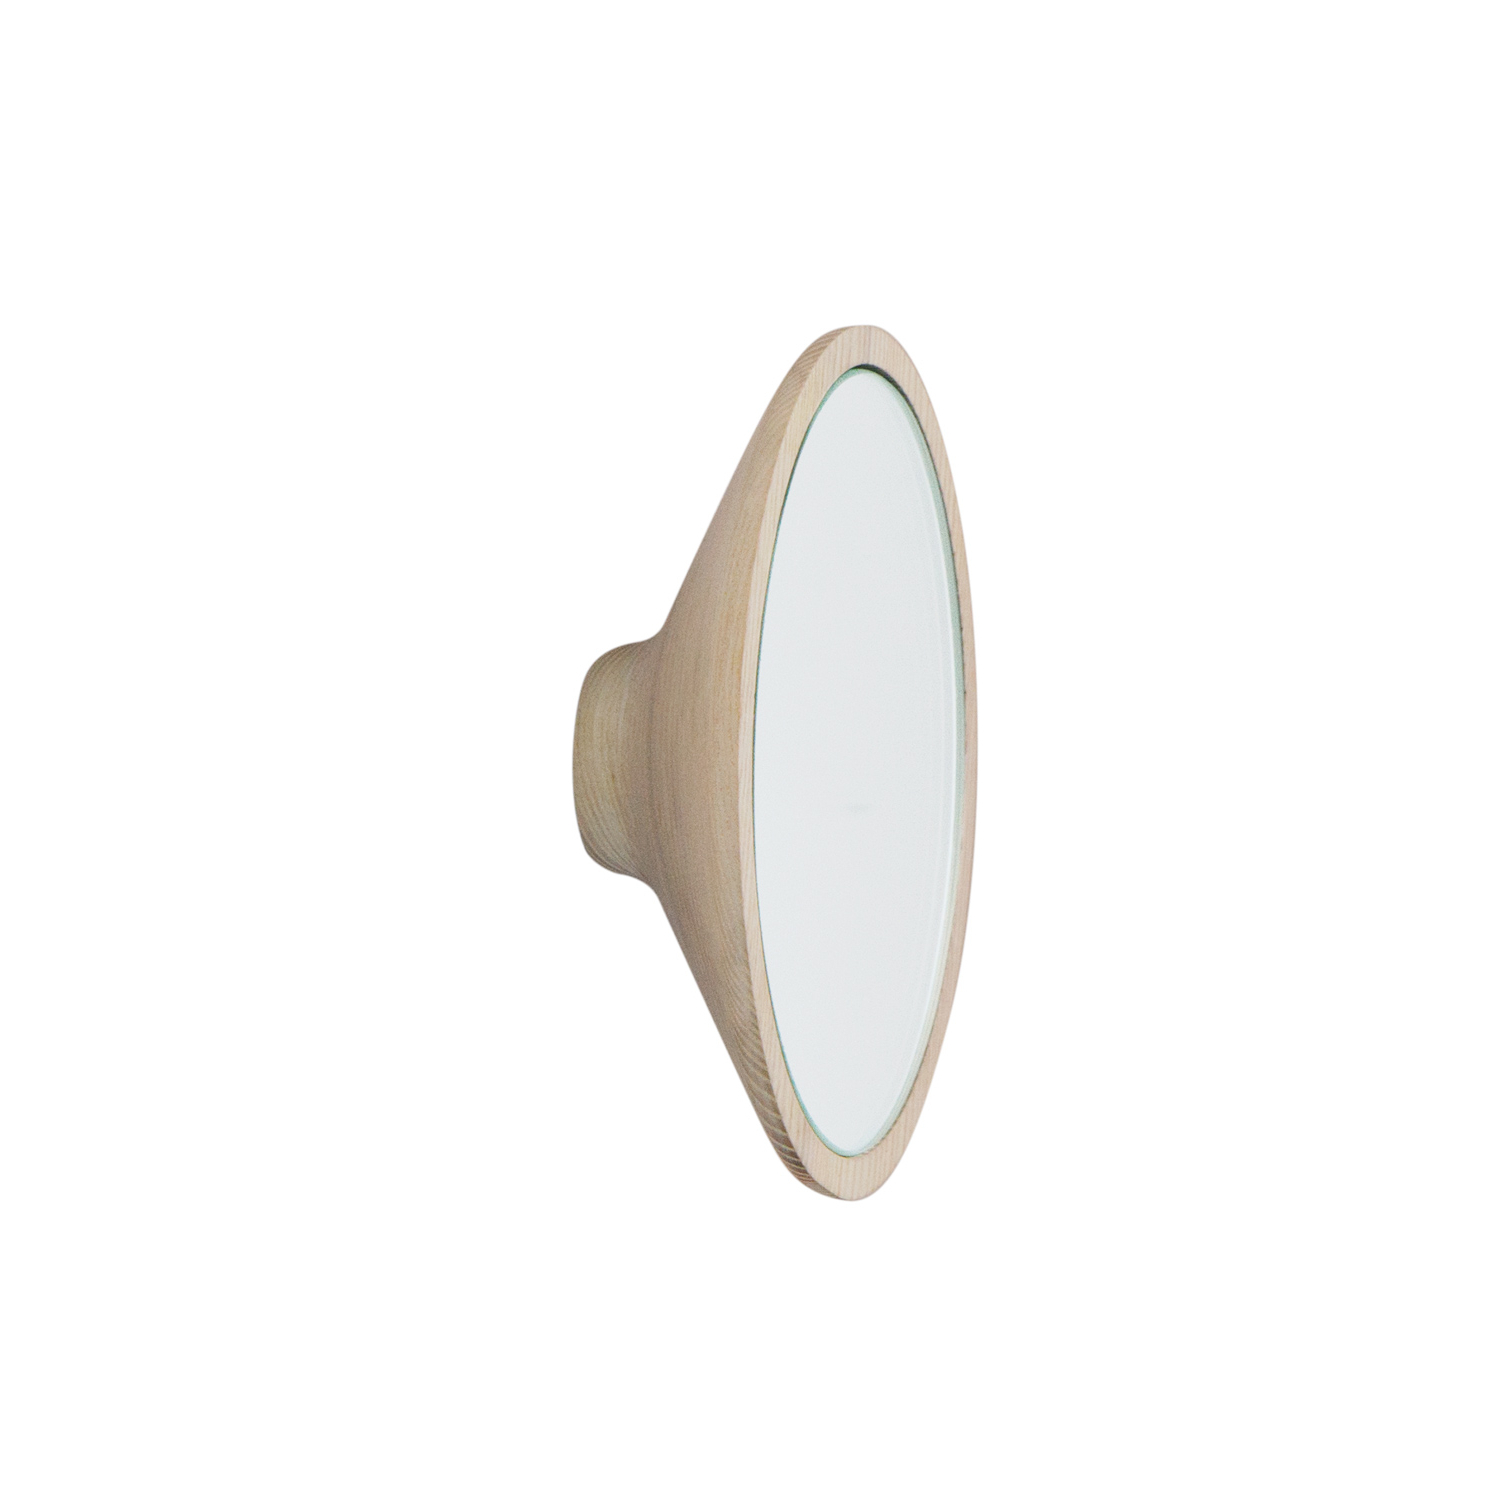 Well Known Coat Rack Wall Mirrors Throughout Wall Coat Rack With Mirror – Medium – Furniteam (View 15 of 20)